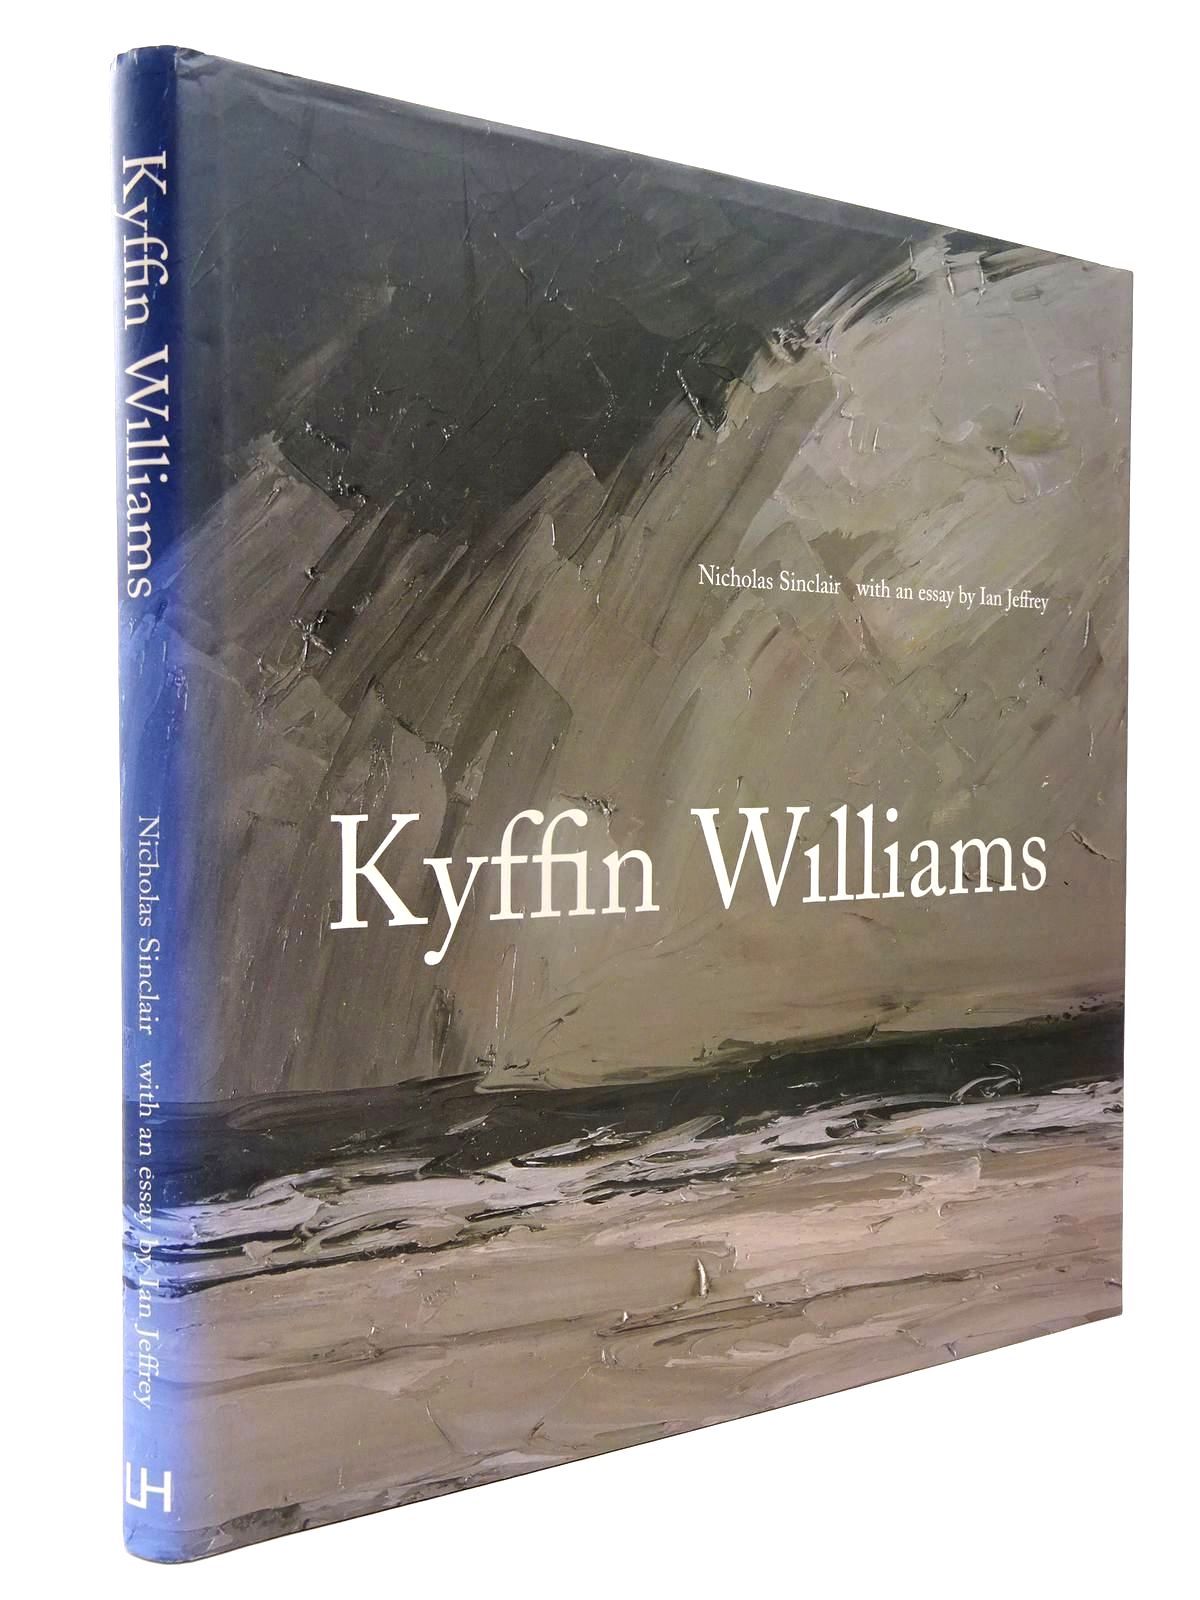 Photo of KYFFIN WILLIAMS written by Sinclair, Nicholas Jeffrey, Ian illustrated by Williams, Kyffin published by Lund Humphries (STOCK CODE: 2130140)  for sale by Stella & Rose's Books